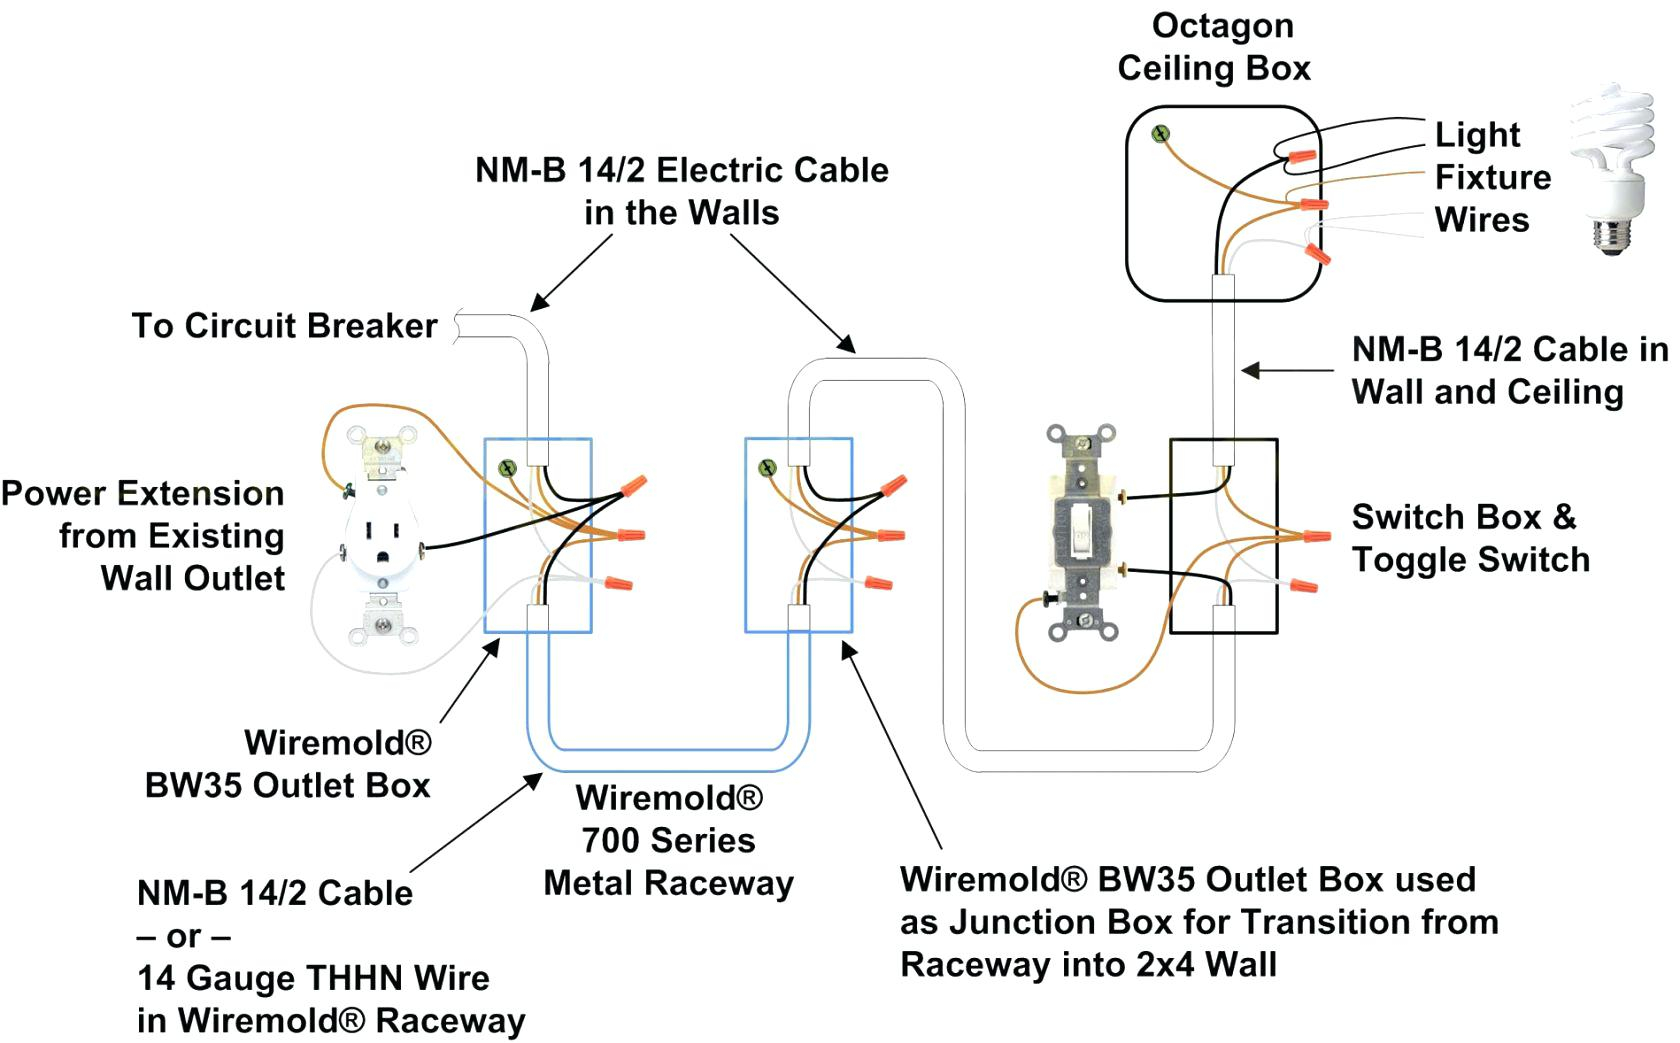 Wiring Diagram Light Switch And Receptacle from wholefoodsonabudget.com